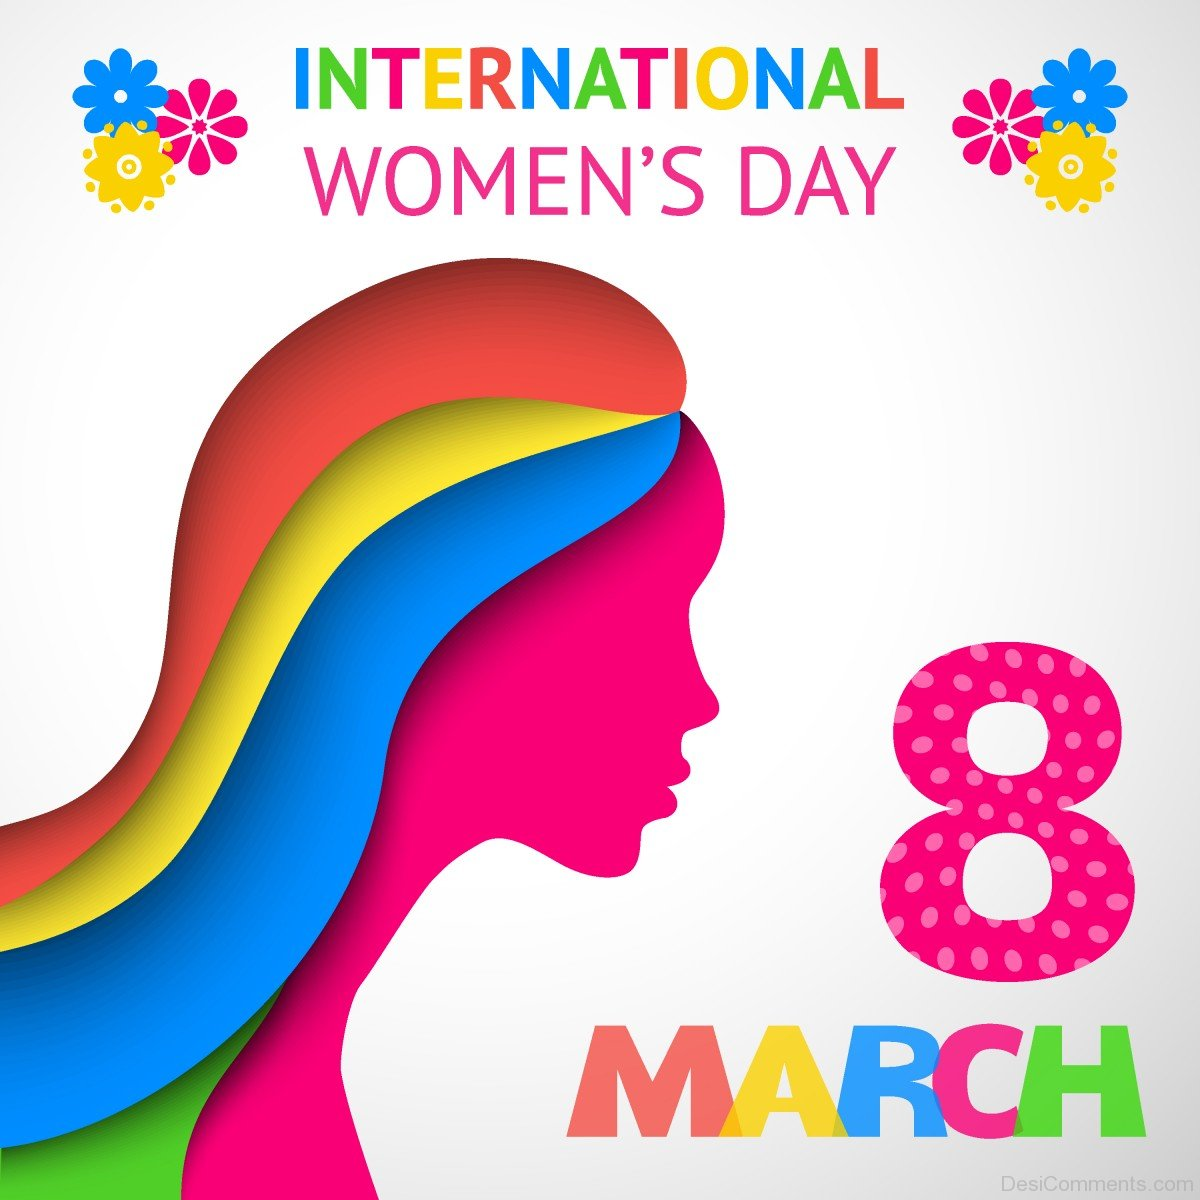 international women u2019s day desicomments com pottery clipart poetry clip art image